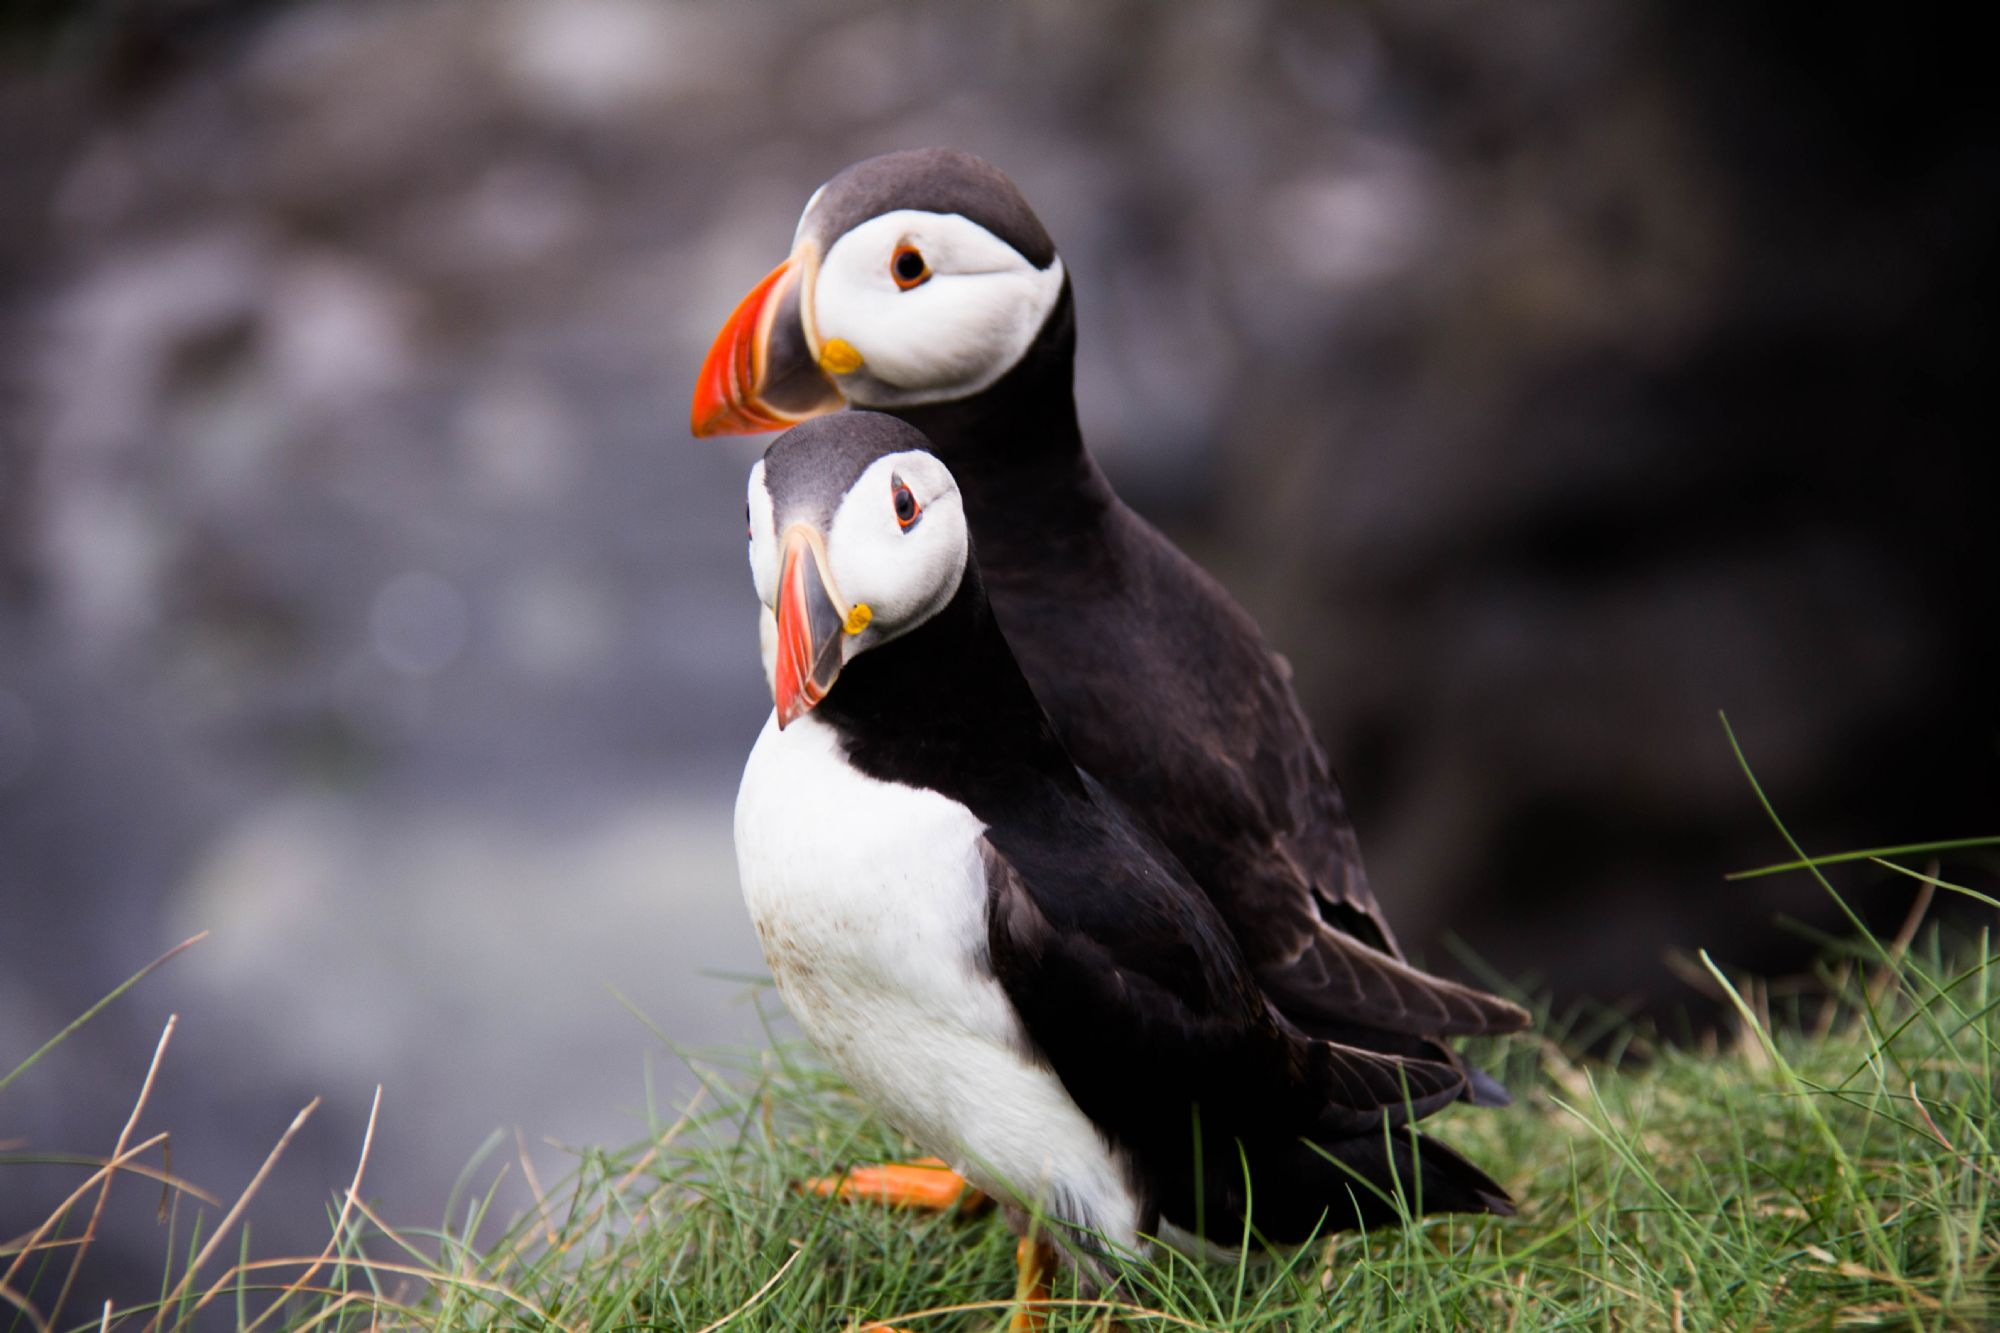 Adorable puffins